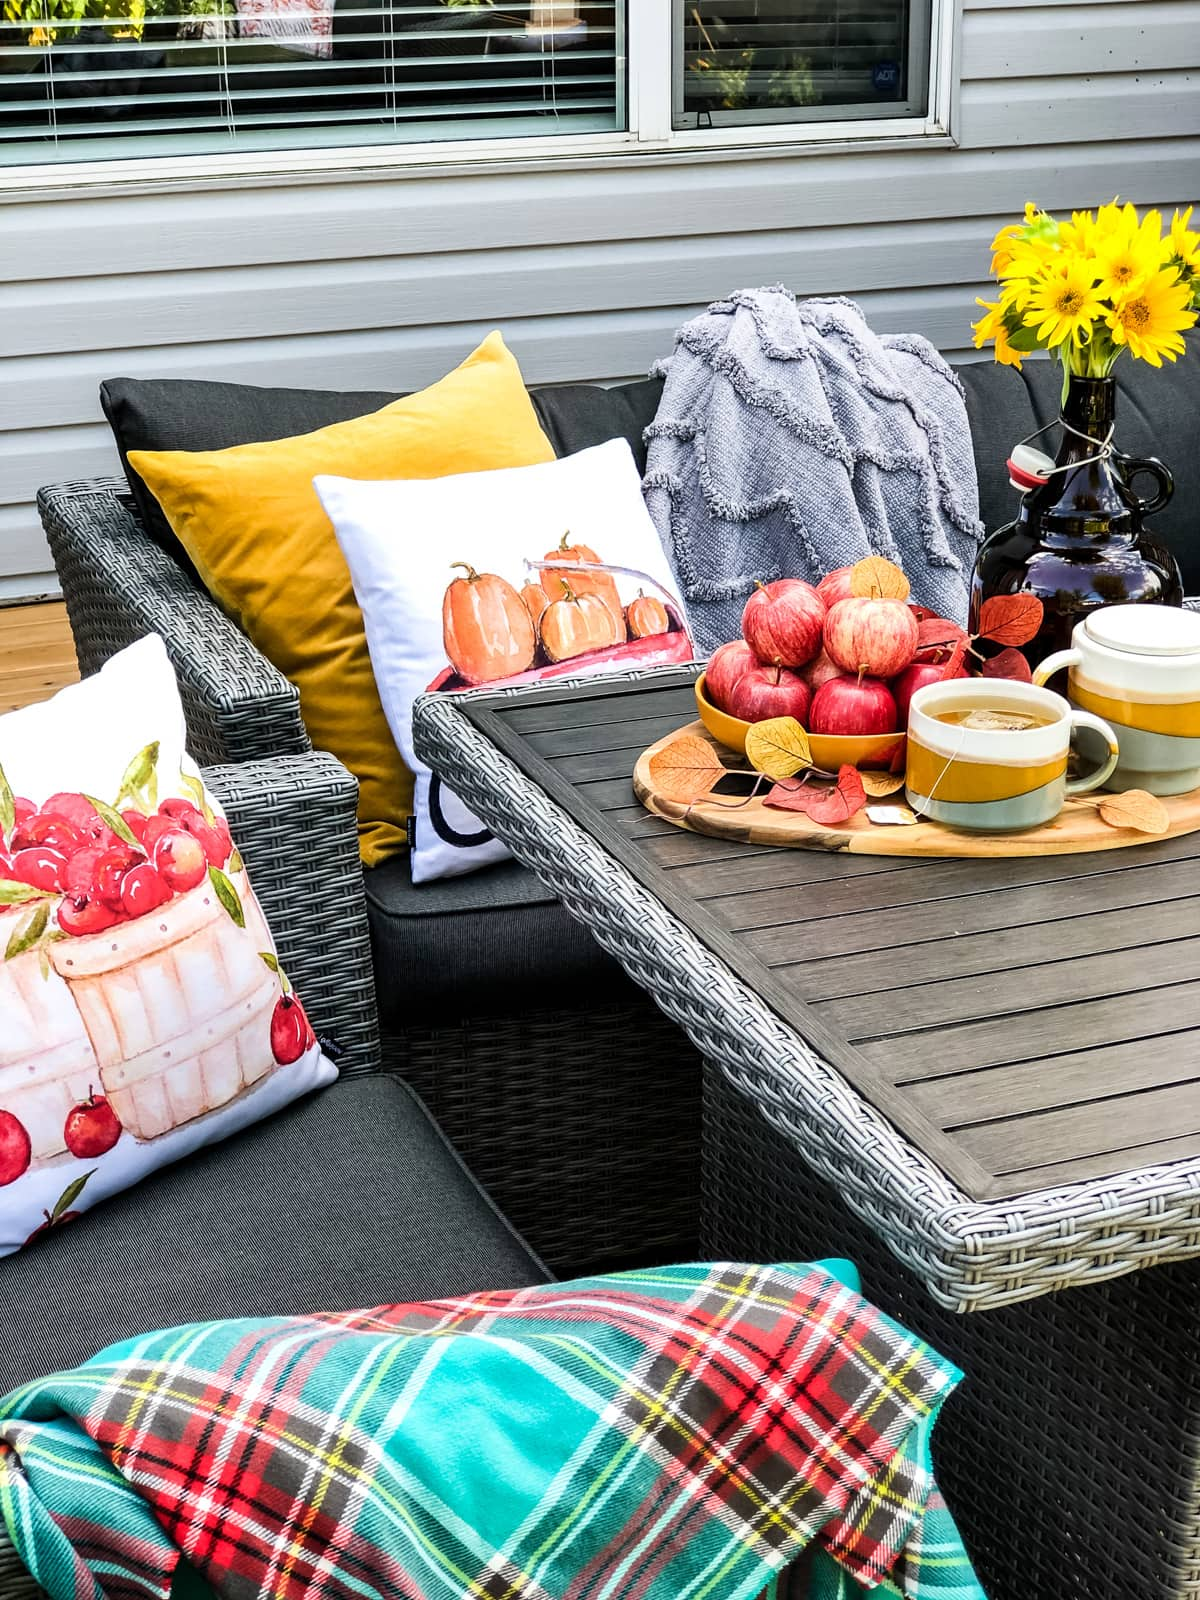 An outdoor table setting with a tray of apples and tea